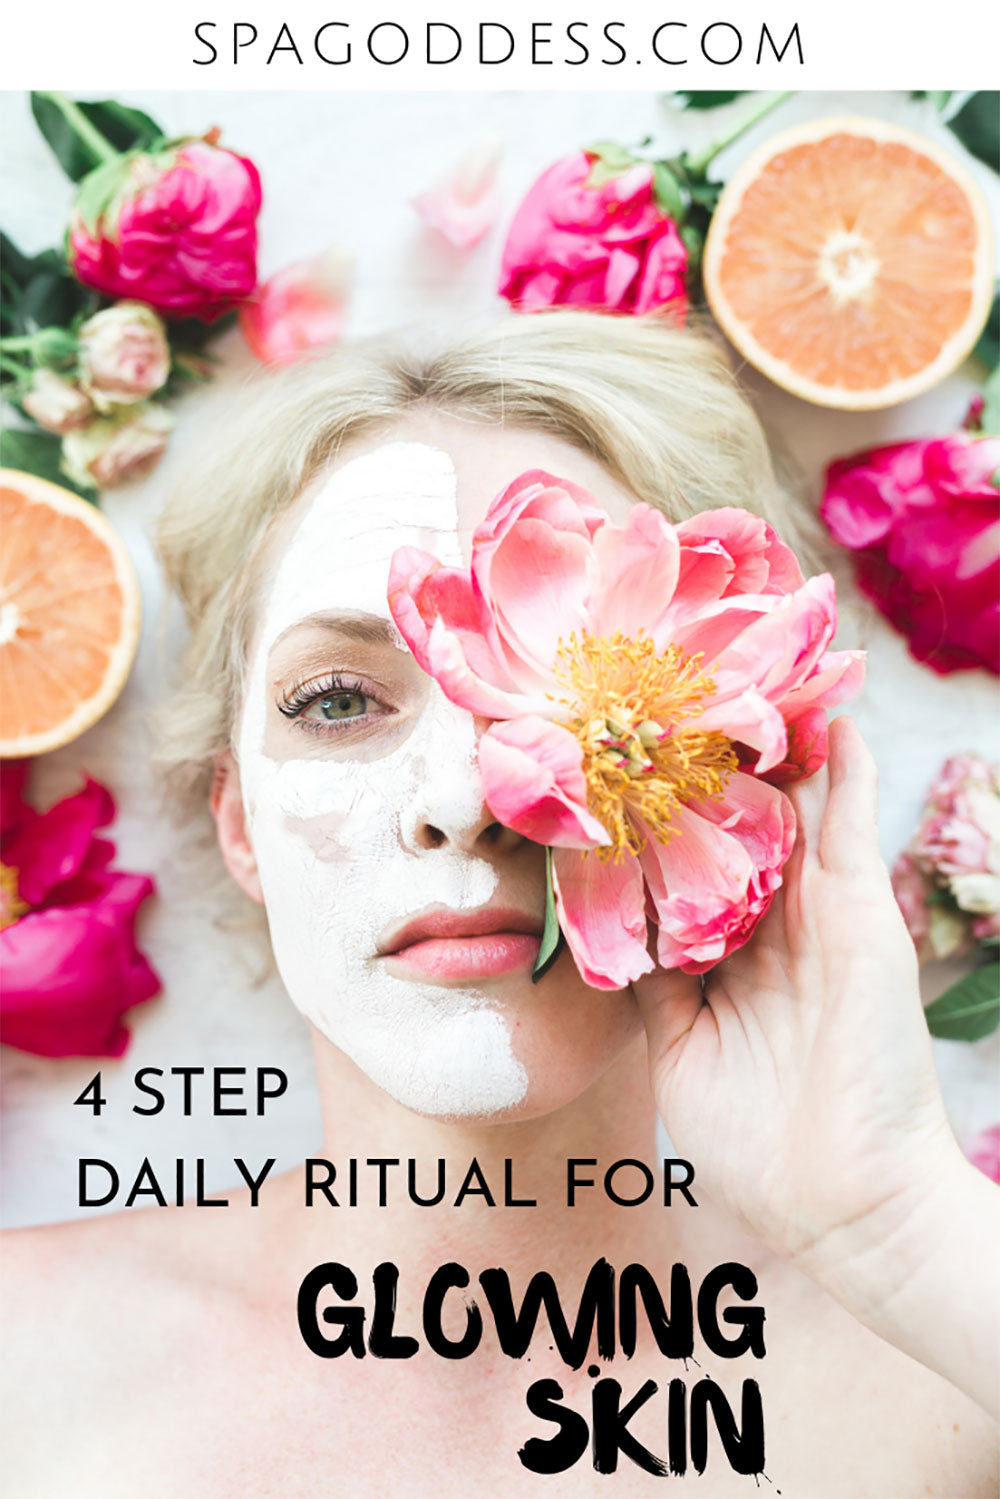 4 Natural Skin Care Steps To Follow For Glowing Skin | Organic Skincare + Natural Skincare Tips -  Click through to learn the natural skin care routine you need for glowing skin by SpaGoddess Apothecary | natural beauty tips | organic skin care products | herbal skin care for face + body | self care tips | organic natural beauty products | organic natural beauty brand | all natural skin care routine | natural green beauty tips | how to get glowing skin #naturalskincare #greenbeauty #healthyskin